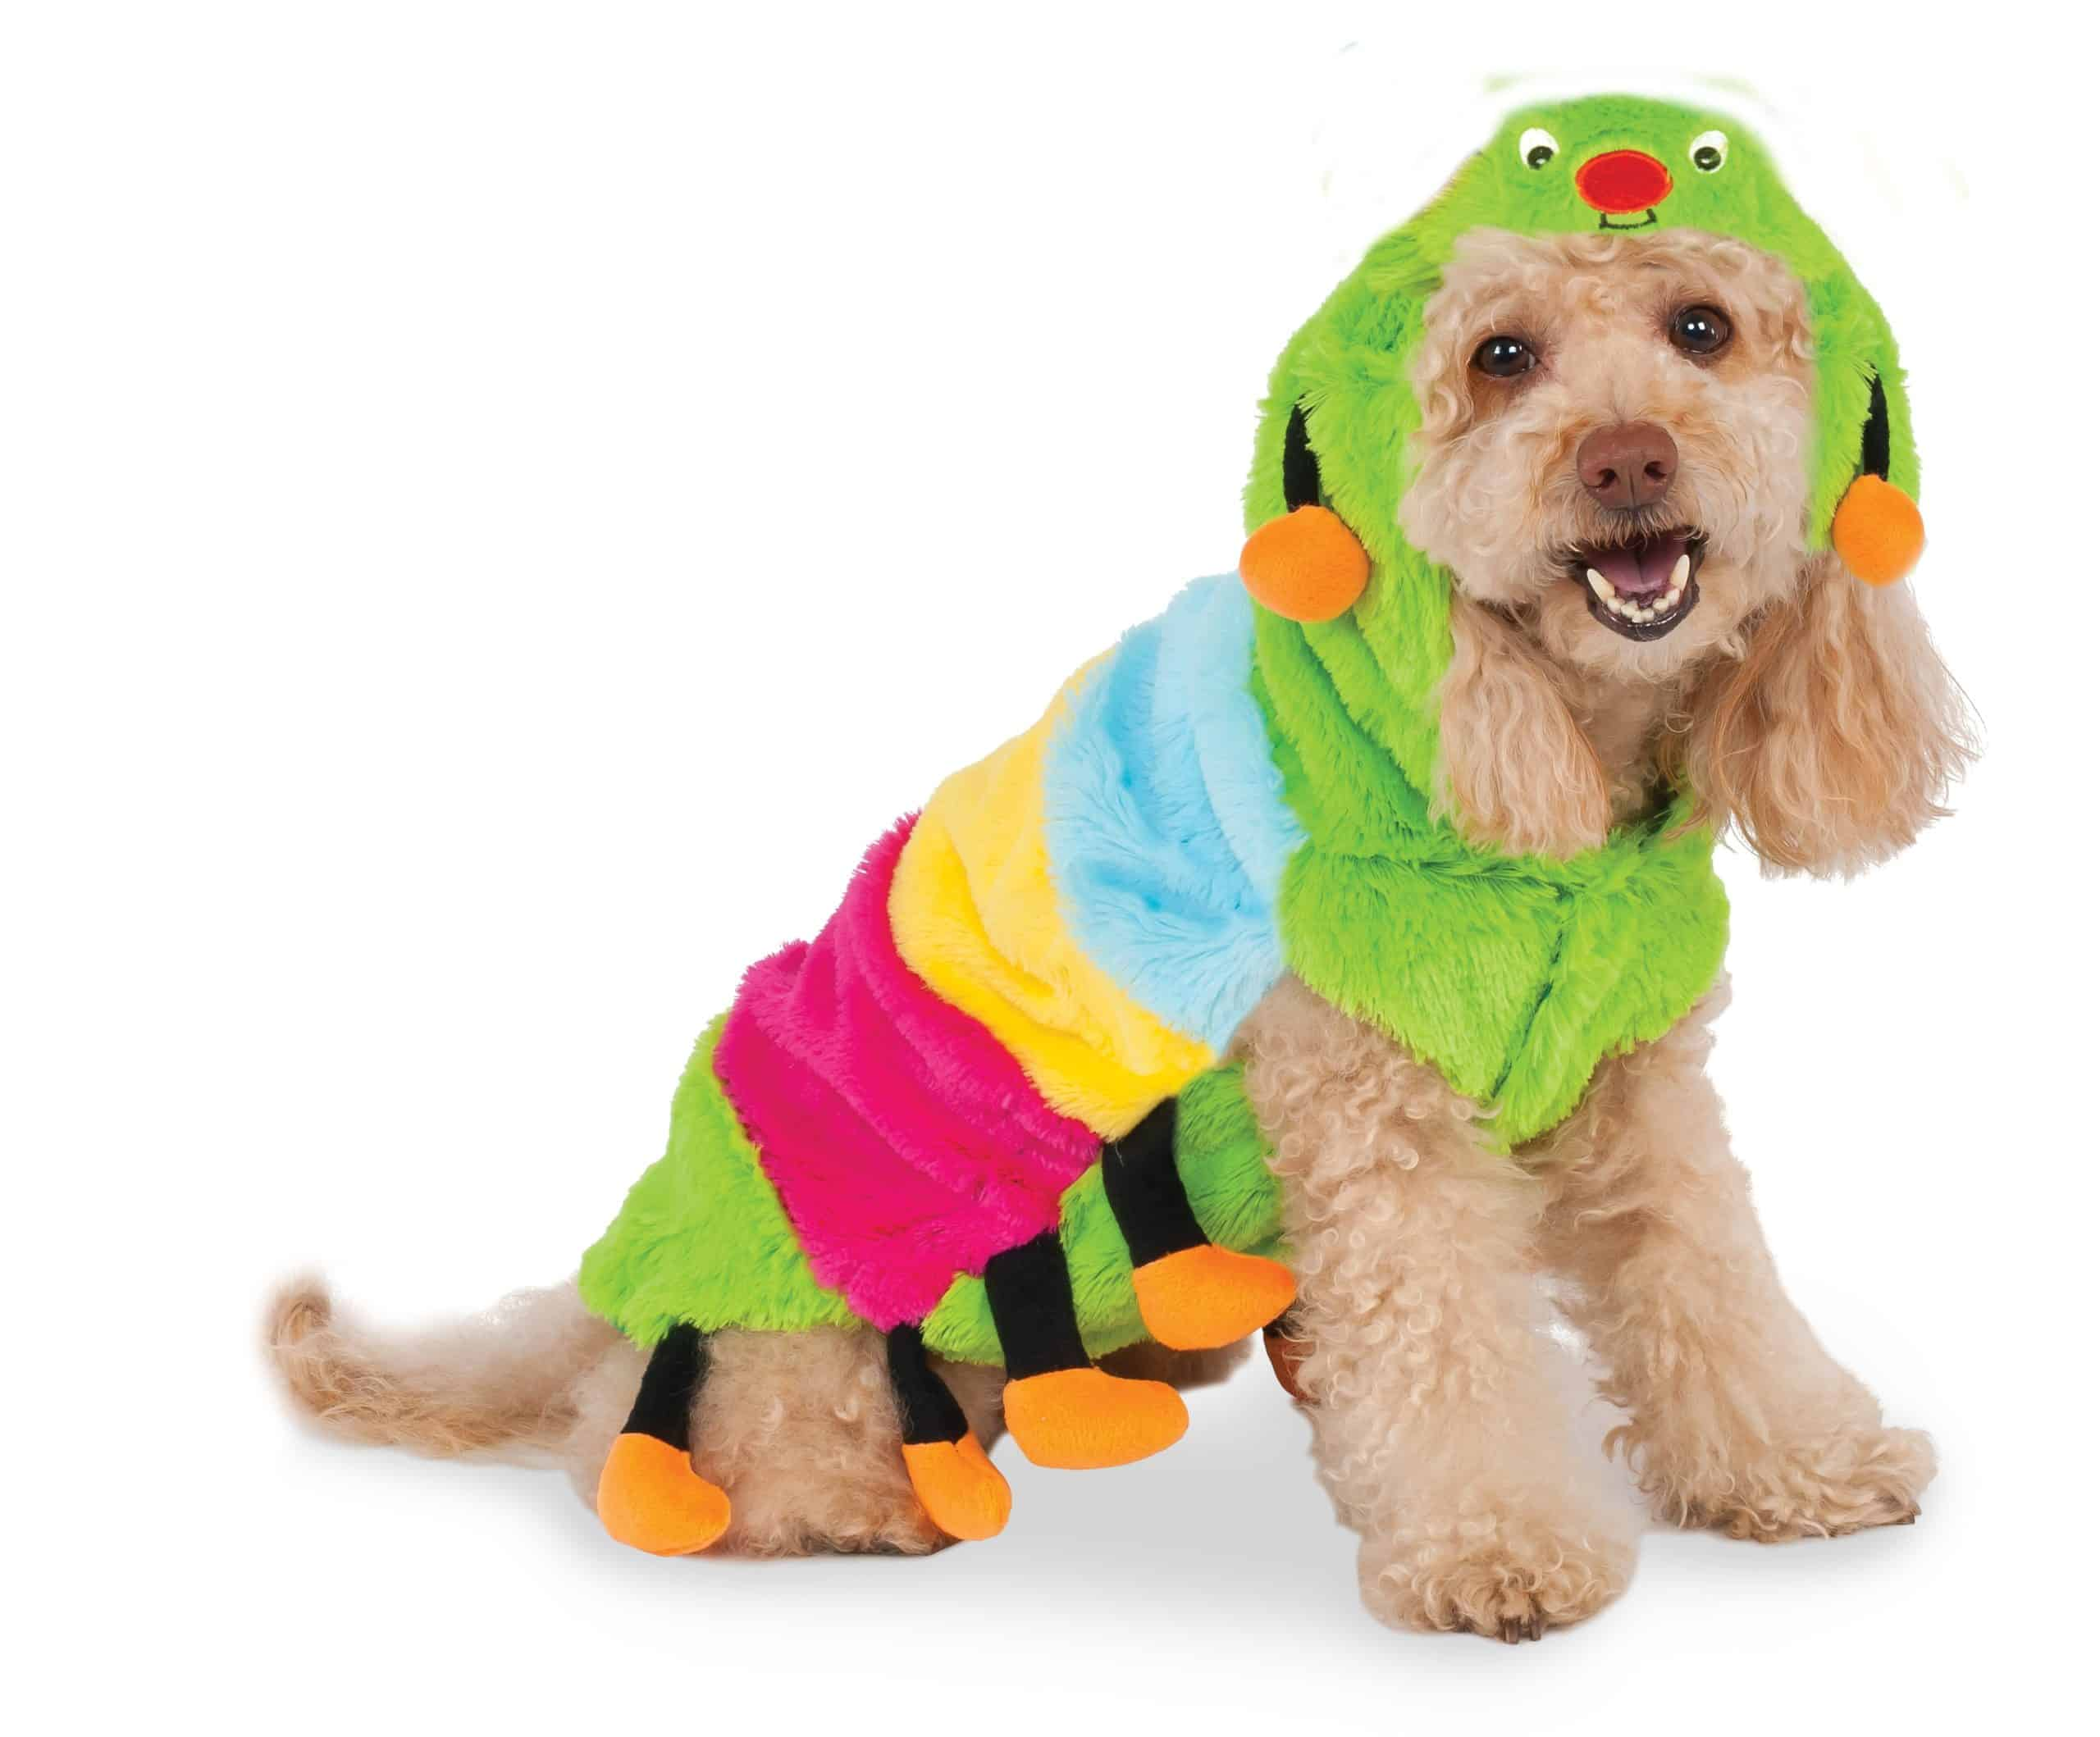 Caterpillar Cutie Dog Costume